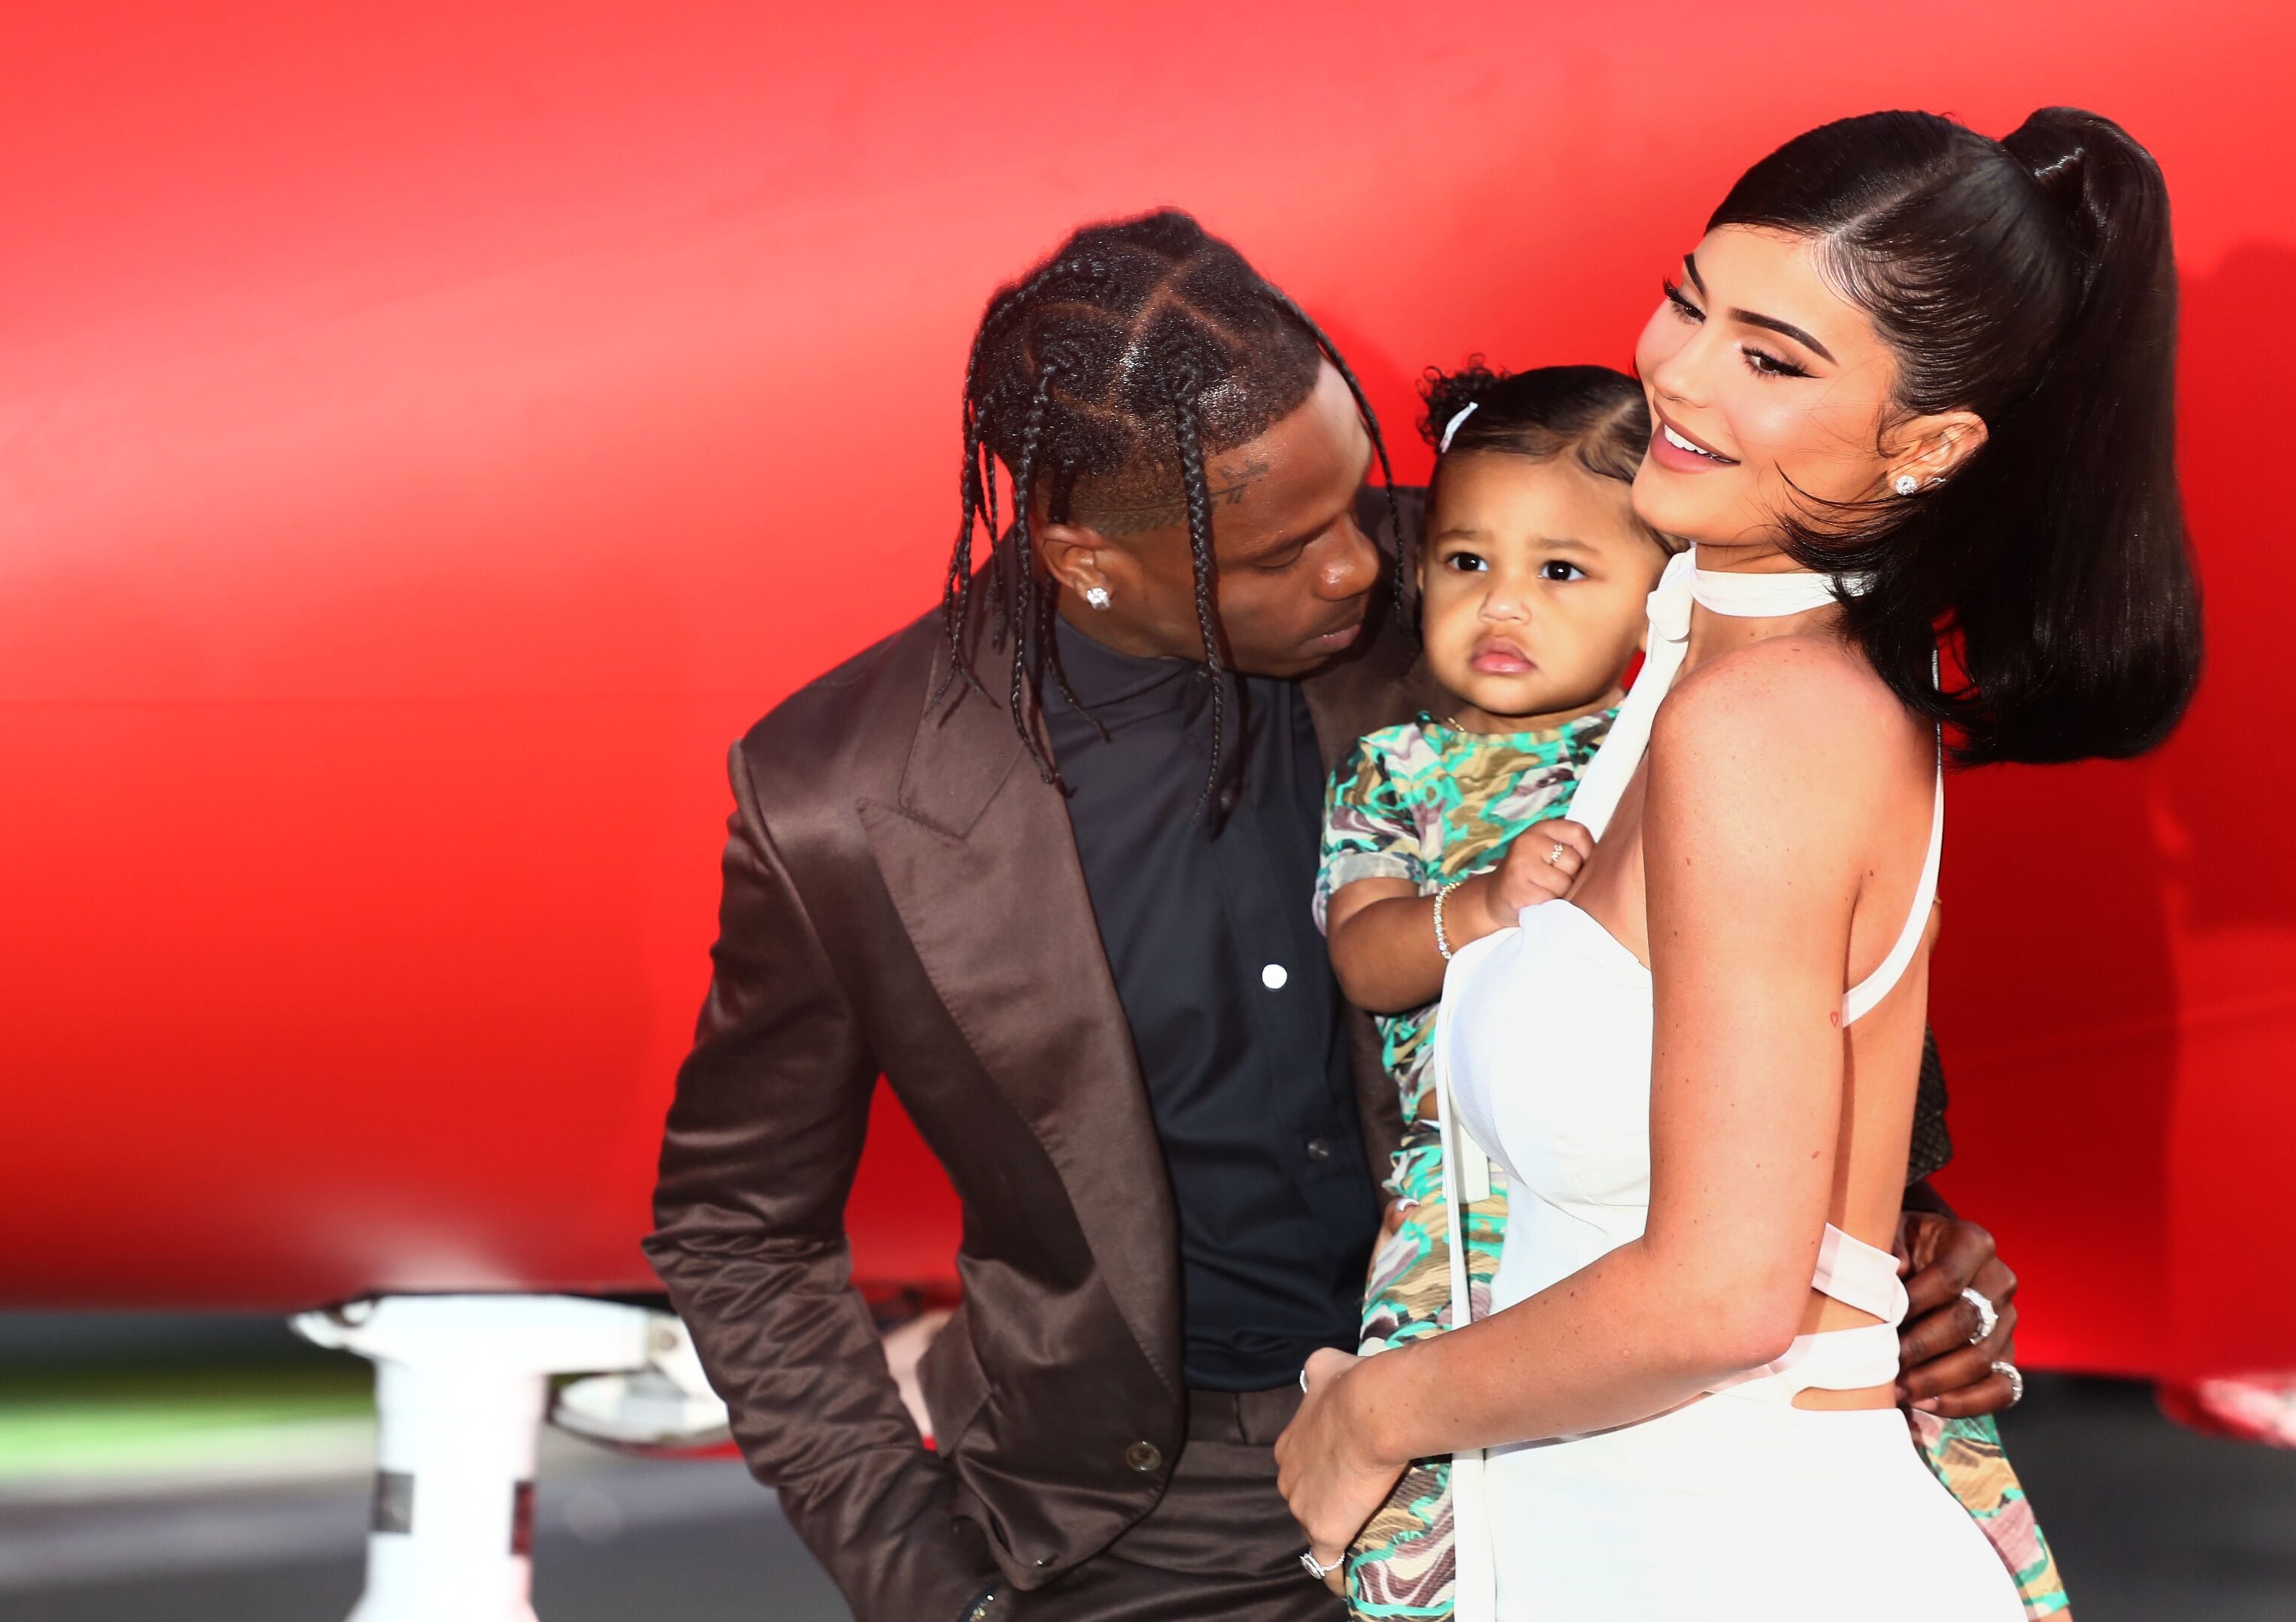 Stormi Webster with her parents Kylie Jenner and Travis Scott/ Source: Getty Images